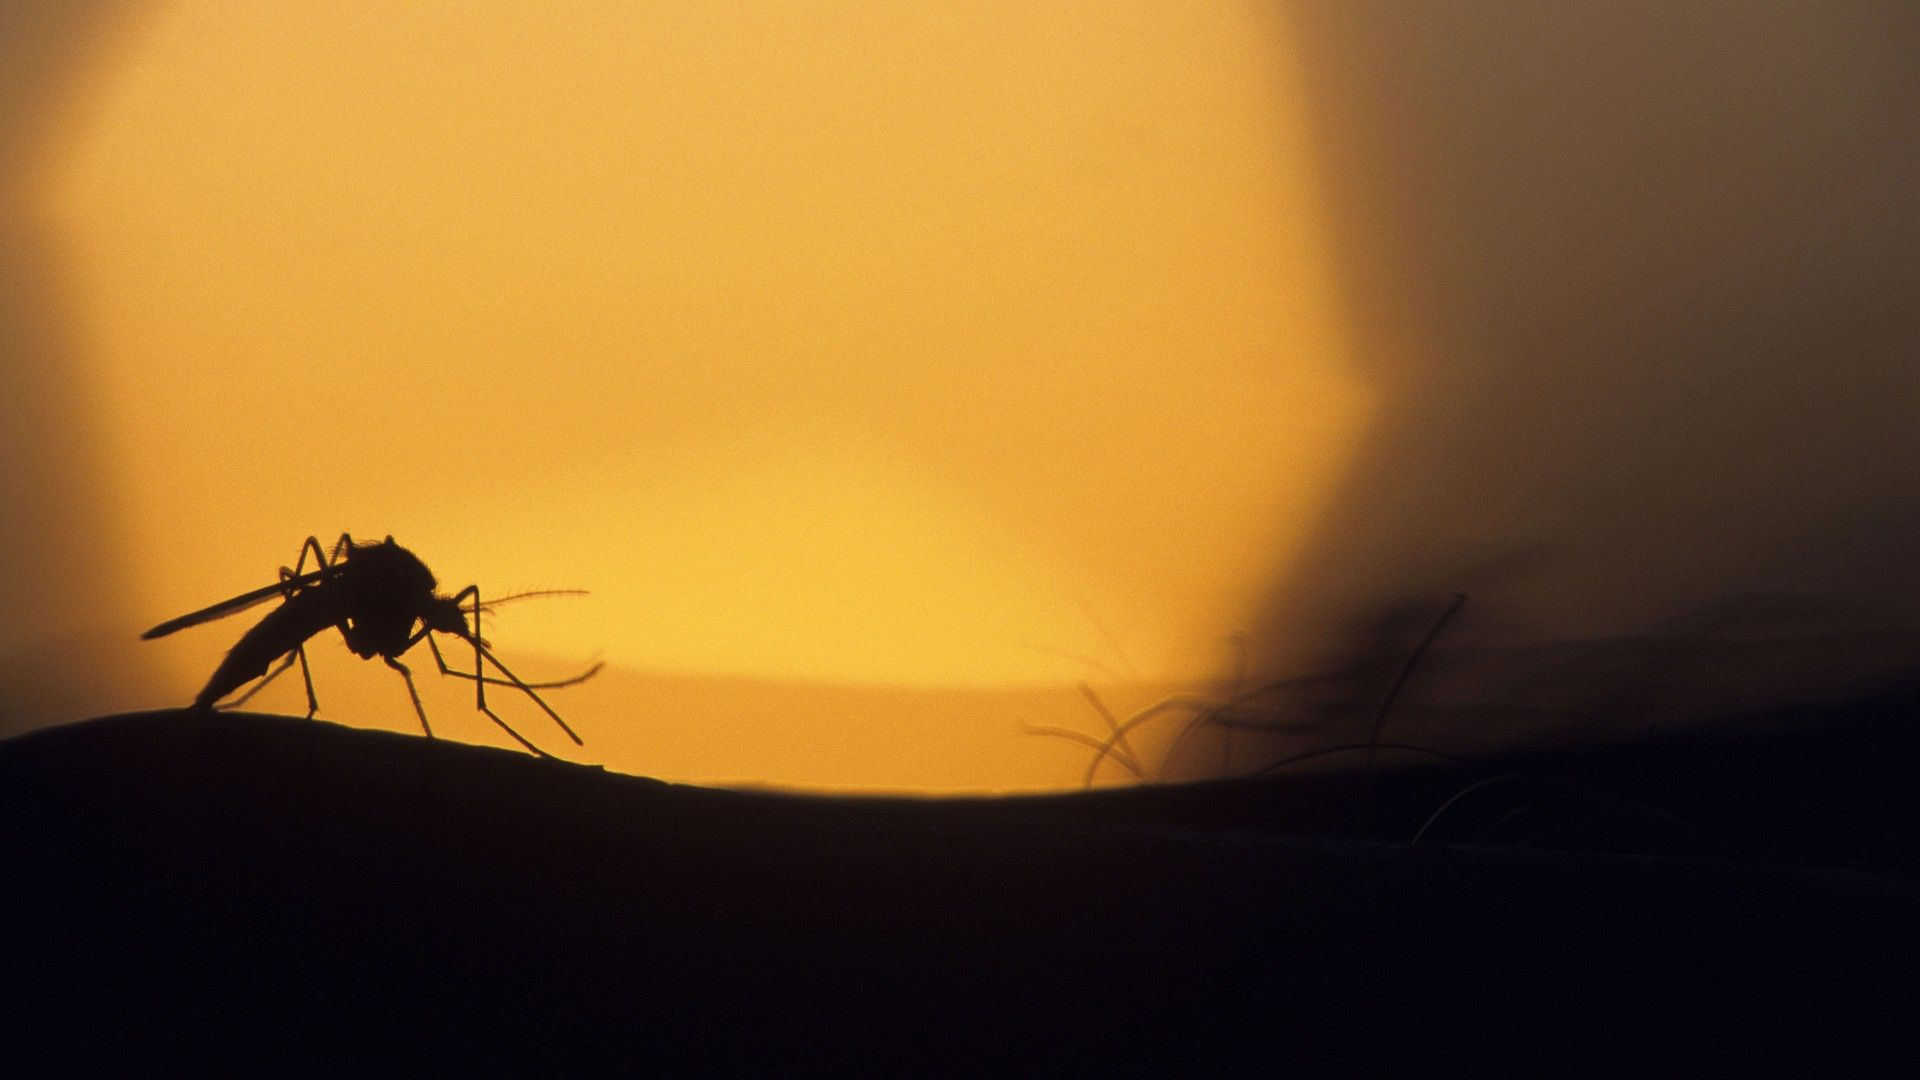 http://www.listofimage/wallpapers/2014/03/Mosquito